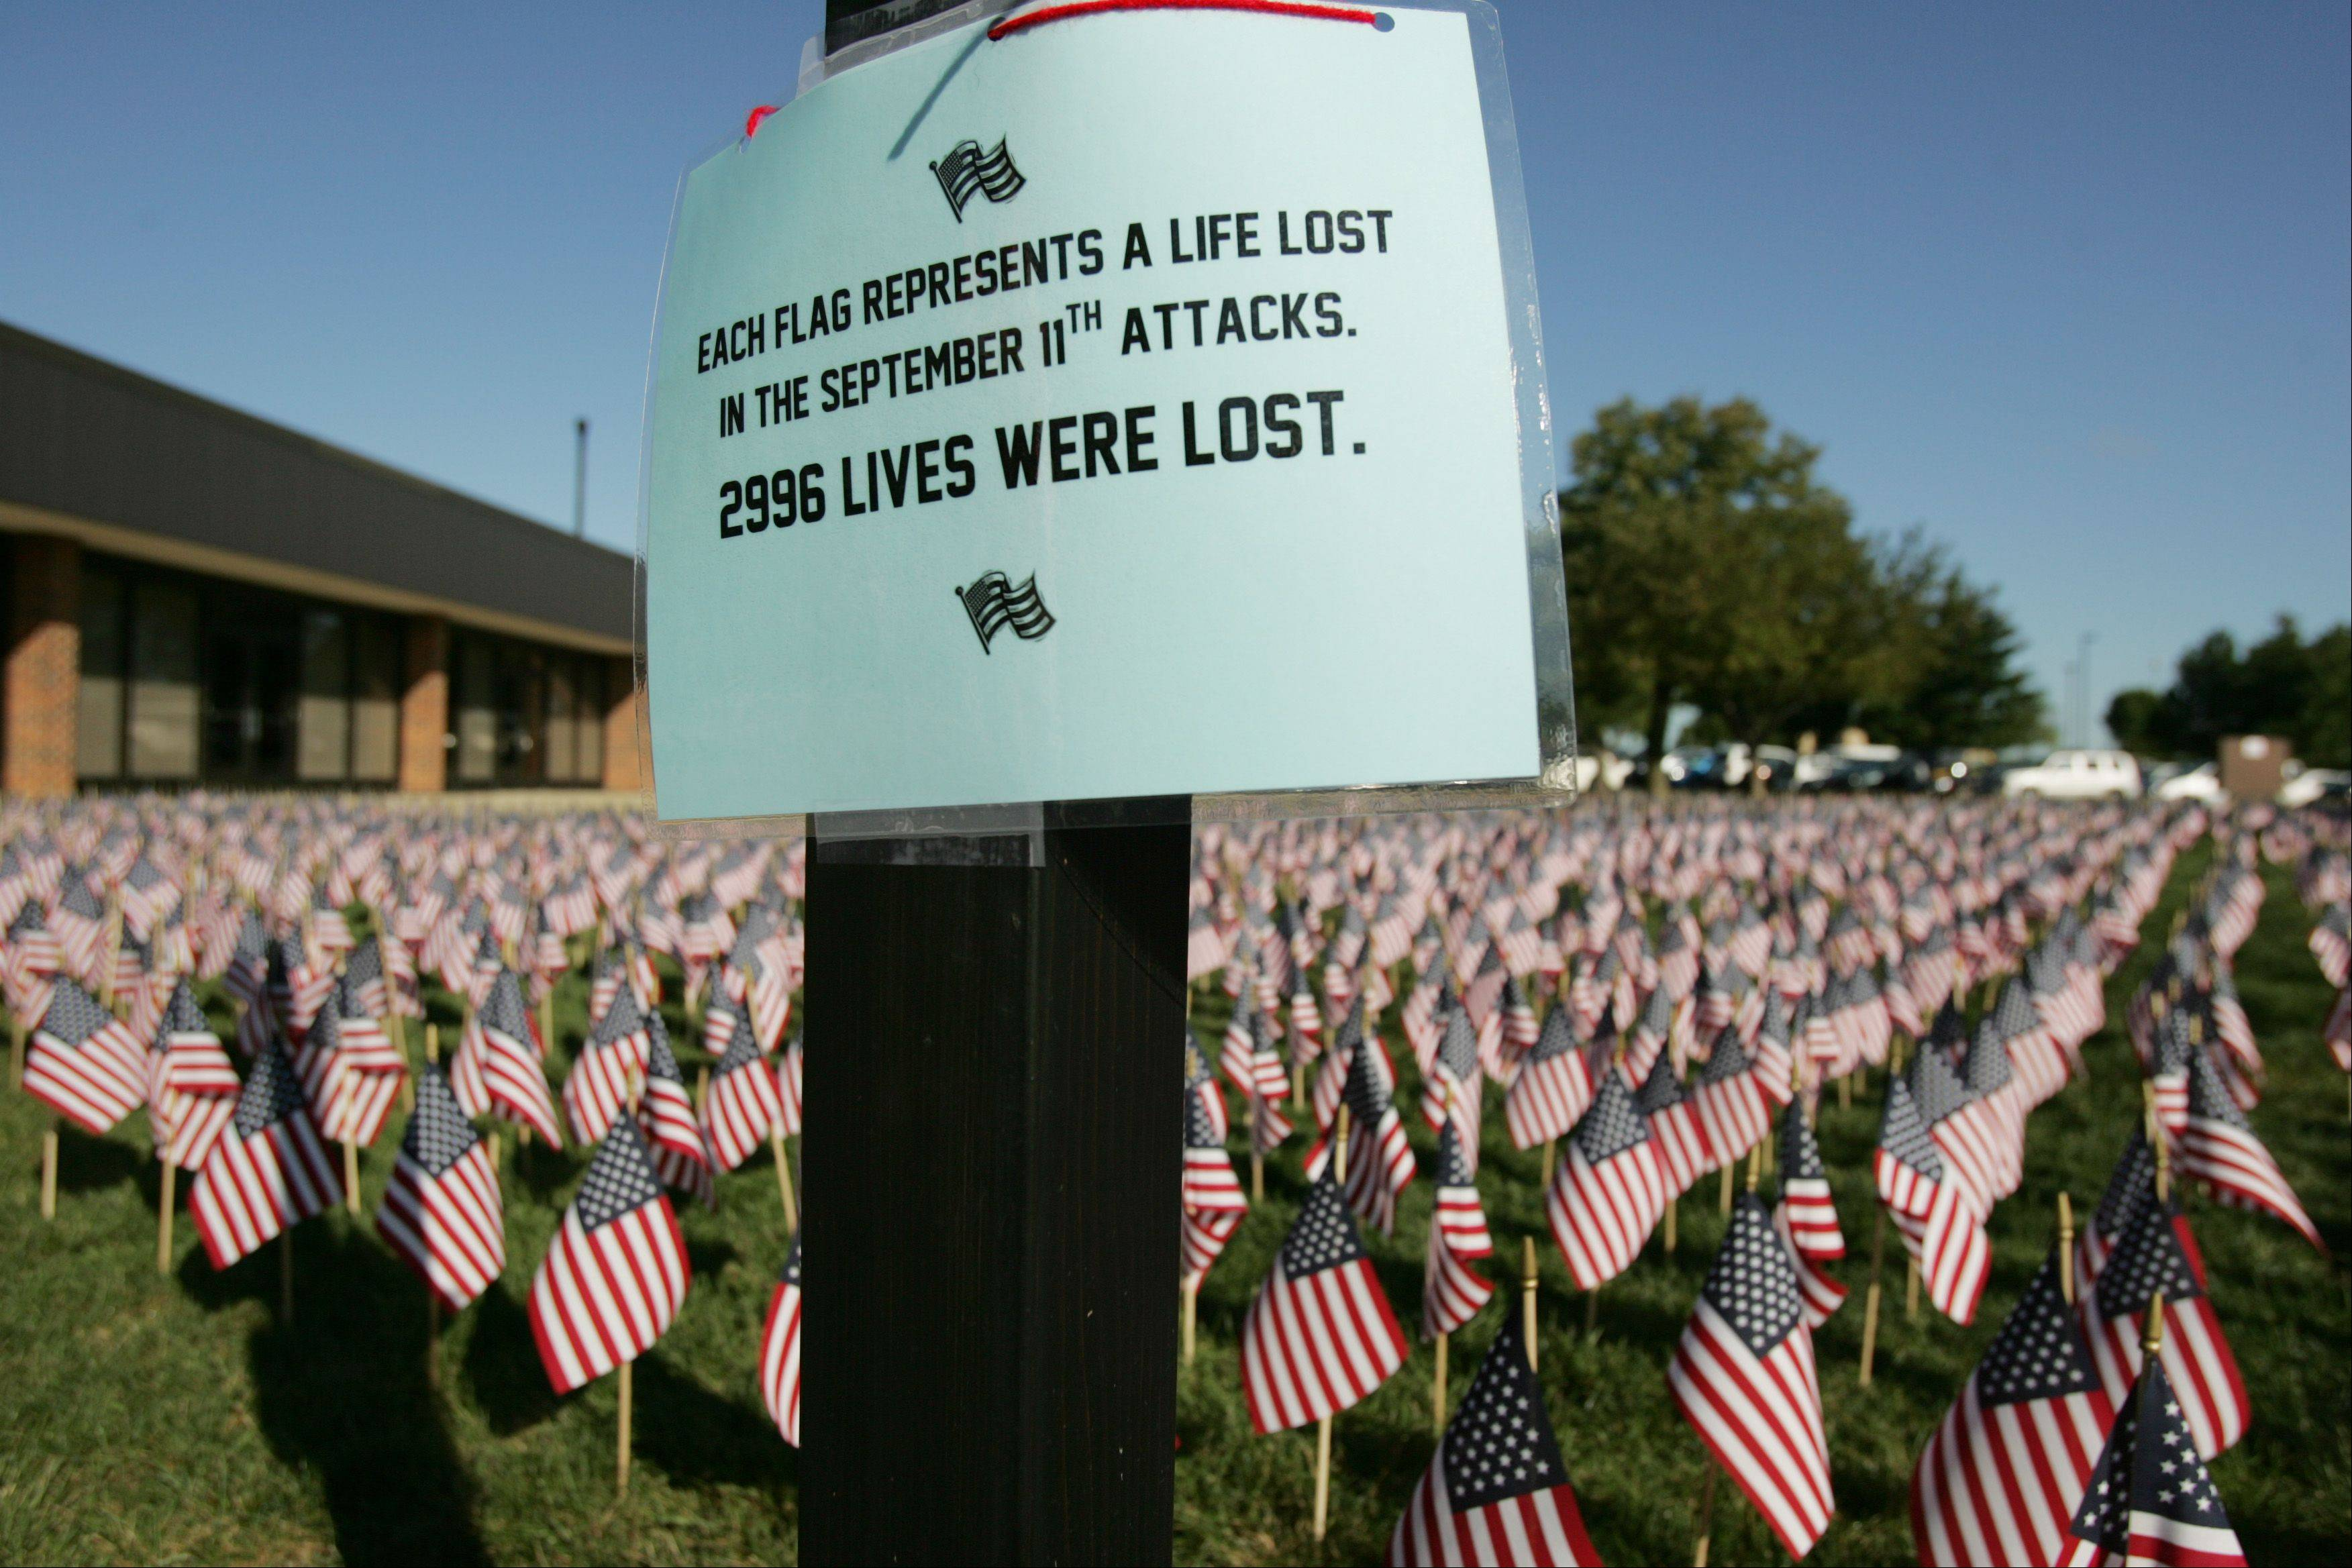 McHenry County College commemorated the 10th anniversary of the attacks of Sept. 11, 2001, with a ceremony at the Crystal Lake campus Wednesday. Some 2,996 flags were placed in the courtyard to honor every life lost that day.